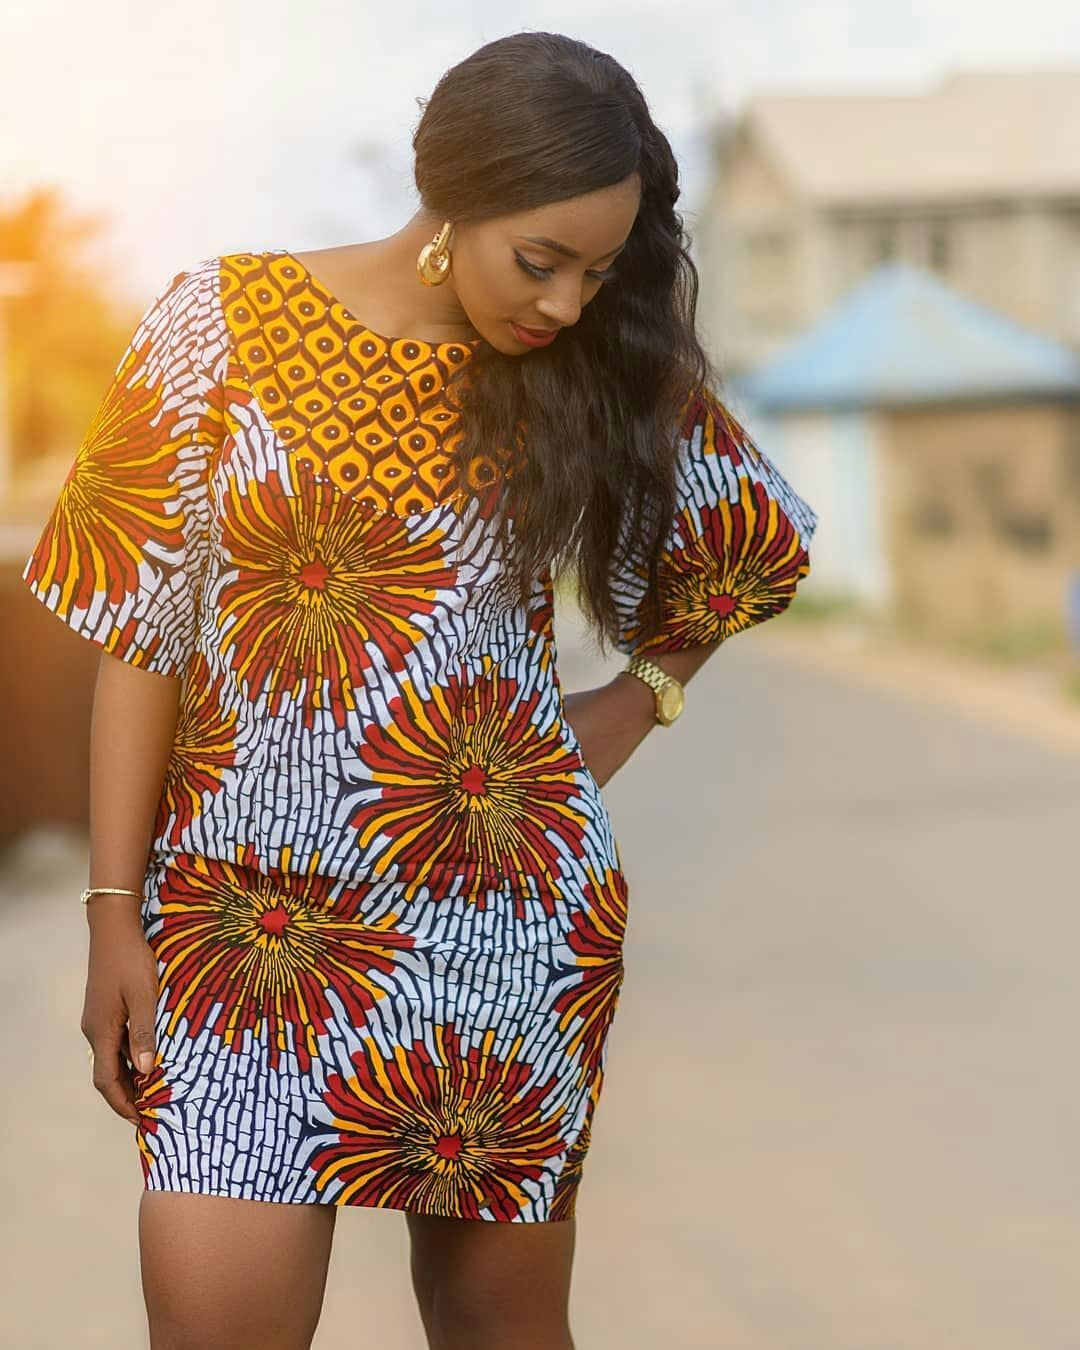 Best African Dress Designs : Scintillating Latest Fashion Styles You Will Love #africandressstyles